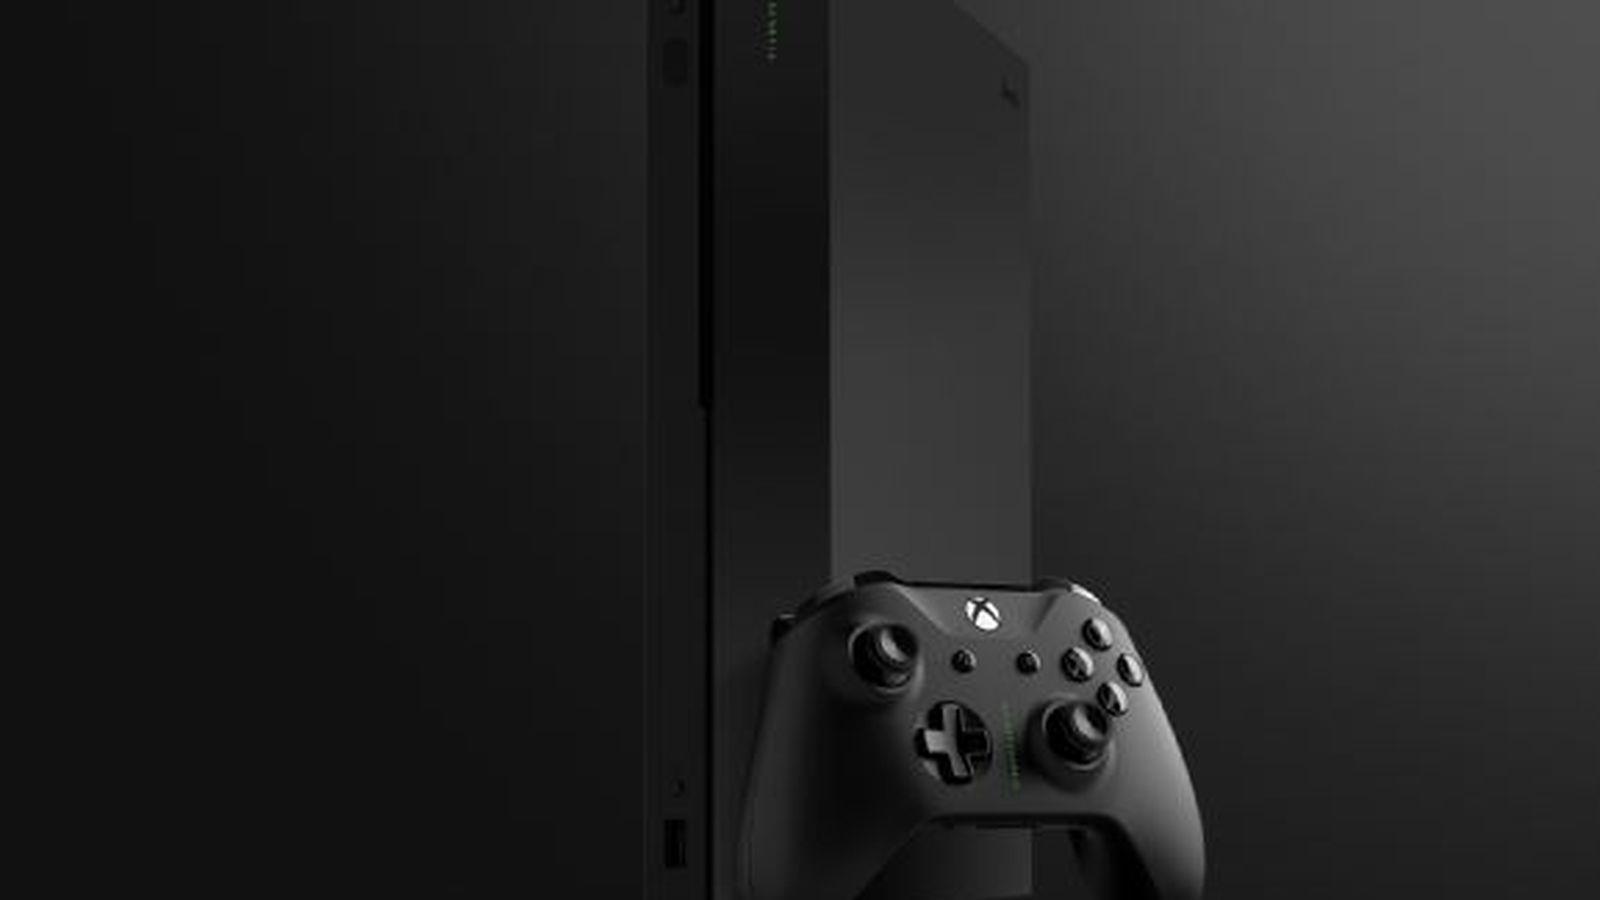 Xbox One X Leak Suggests Limited 'Project Scorpio Edition'